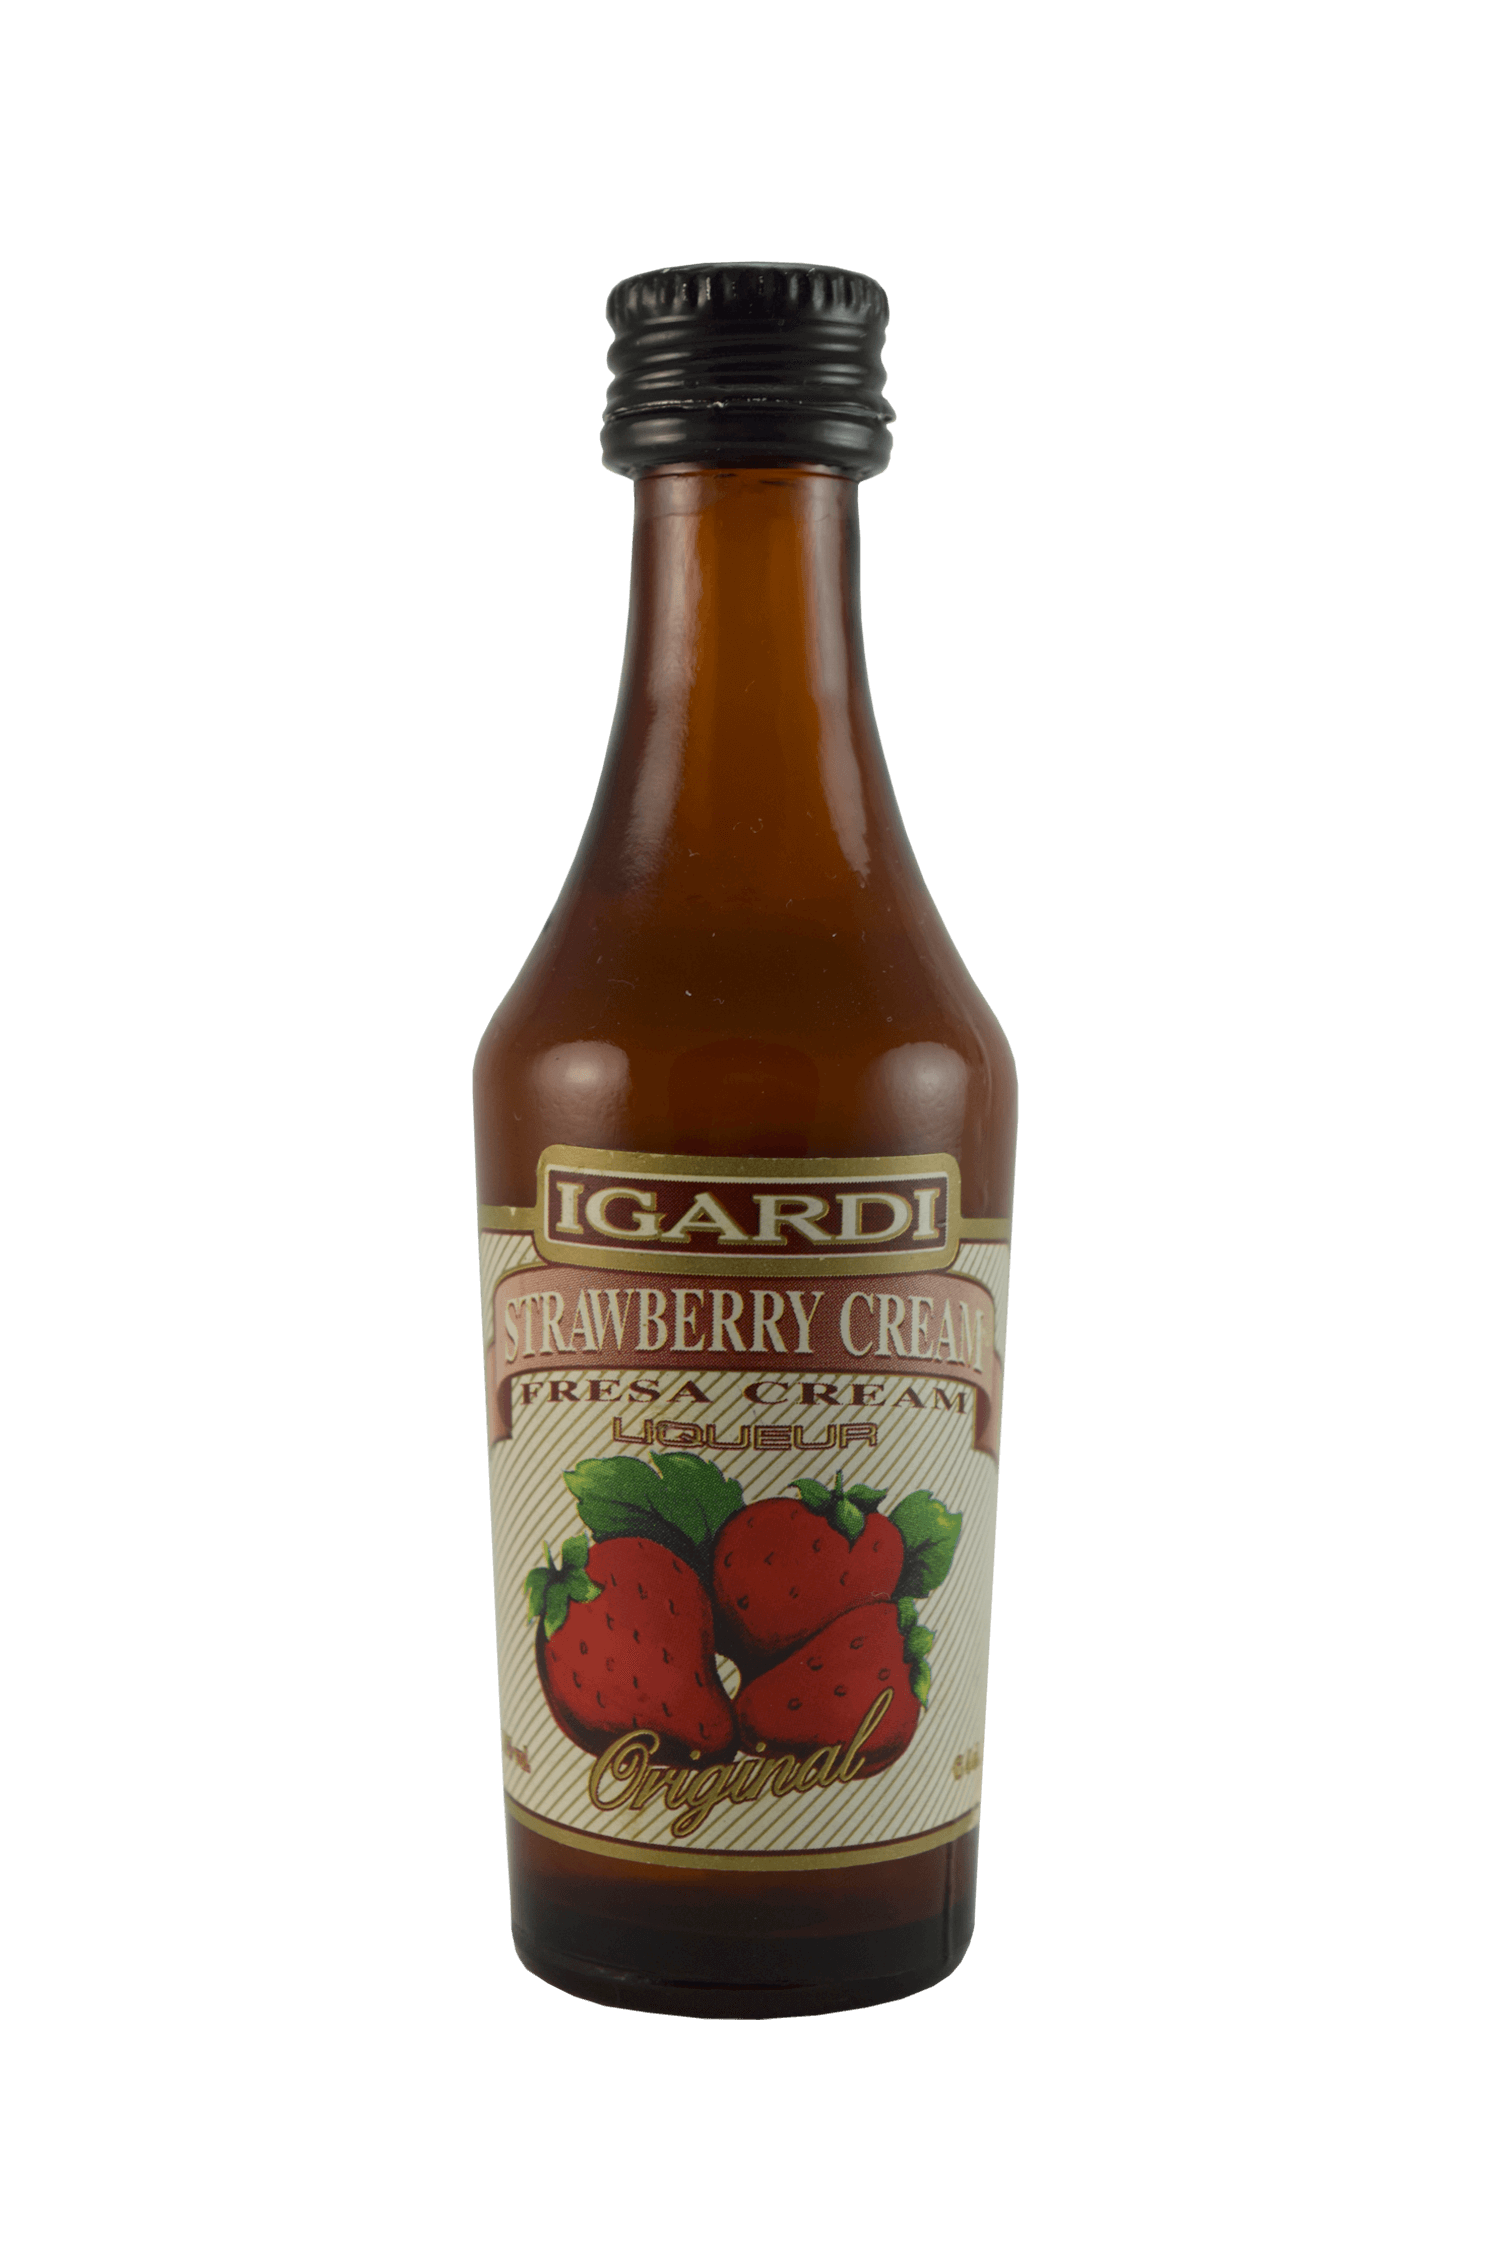 Igardi Strawberry Cream